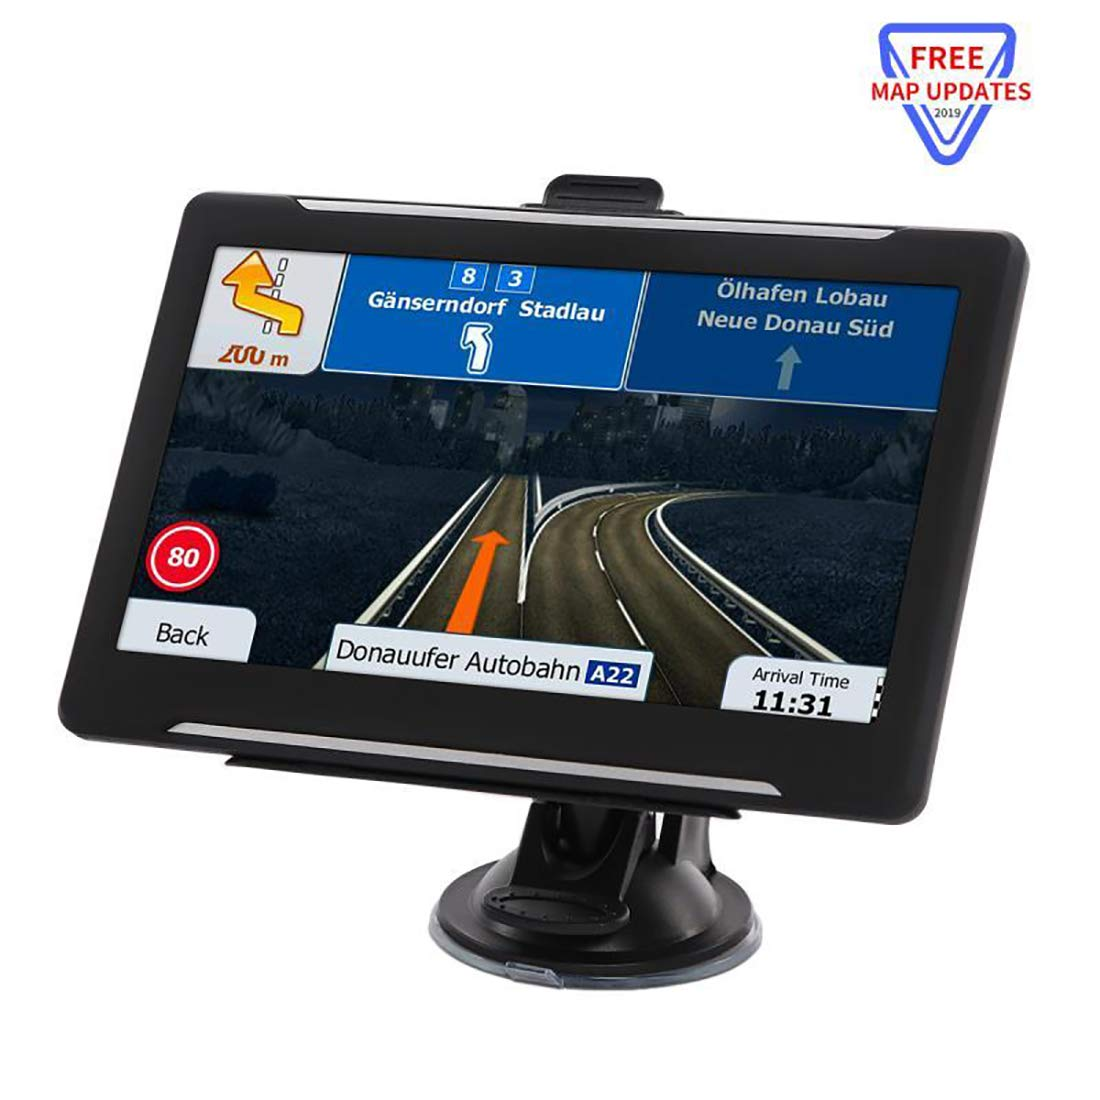 GPS Navigation for car, GPS Navigator System with Free Lifetime Maps, 7 Inch HD Touch Screen, 8GB Voice Broadcast Function, Driving Alert. by Ineed